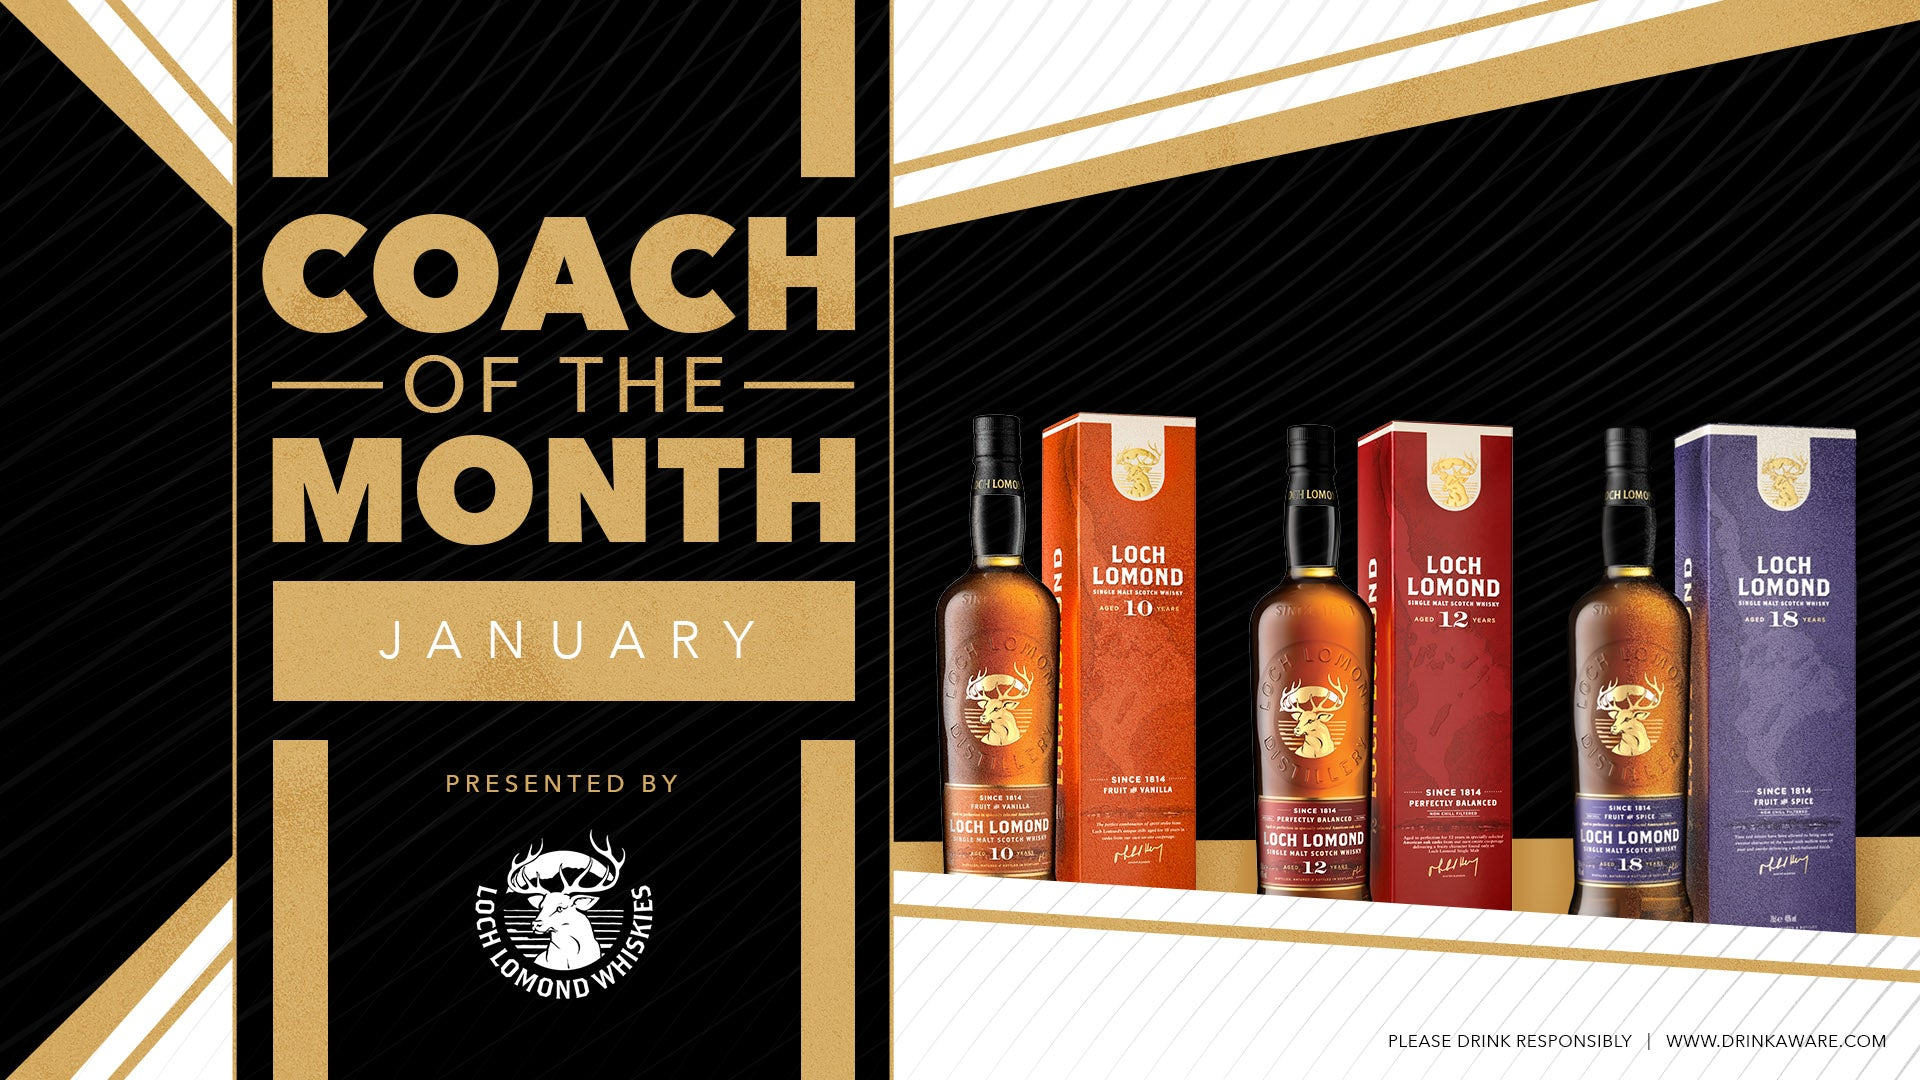 Coach of the Month - Rugby